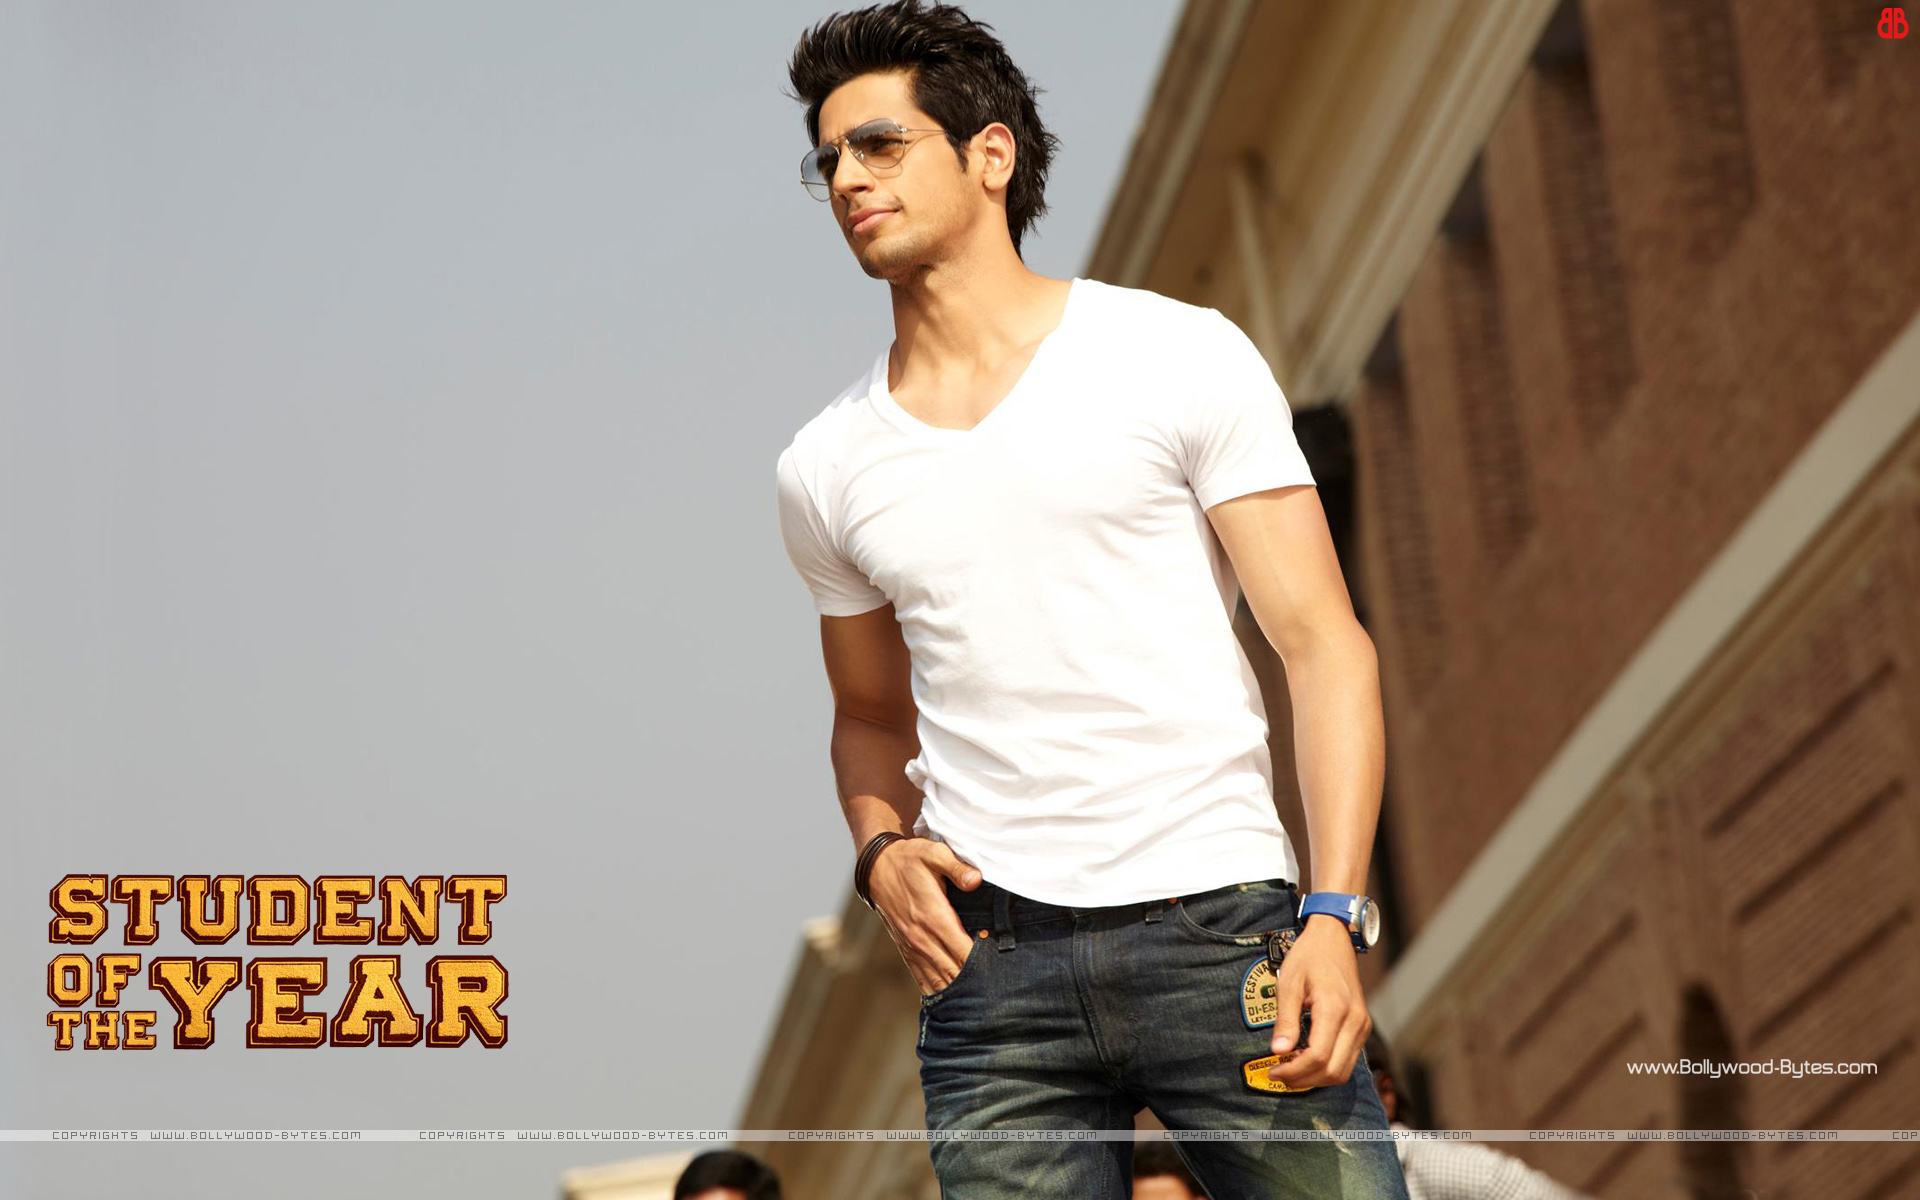 http://4.bp.blogspot.com/-wRSYHsEEmIg/UGtDFAjSD8I/AAAAAAAAQdc/RHzMKi656Lc/s1920/Student-Of-The-Year-+Hot-Sidharth-Malhotra-HD-Wallaper-34.jpg